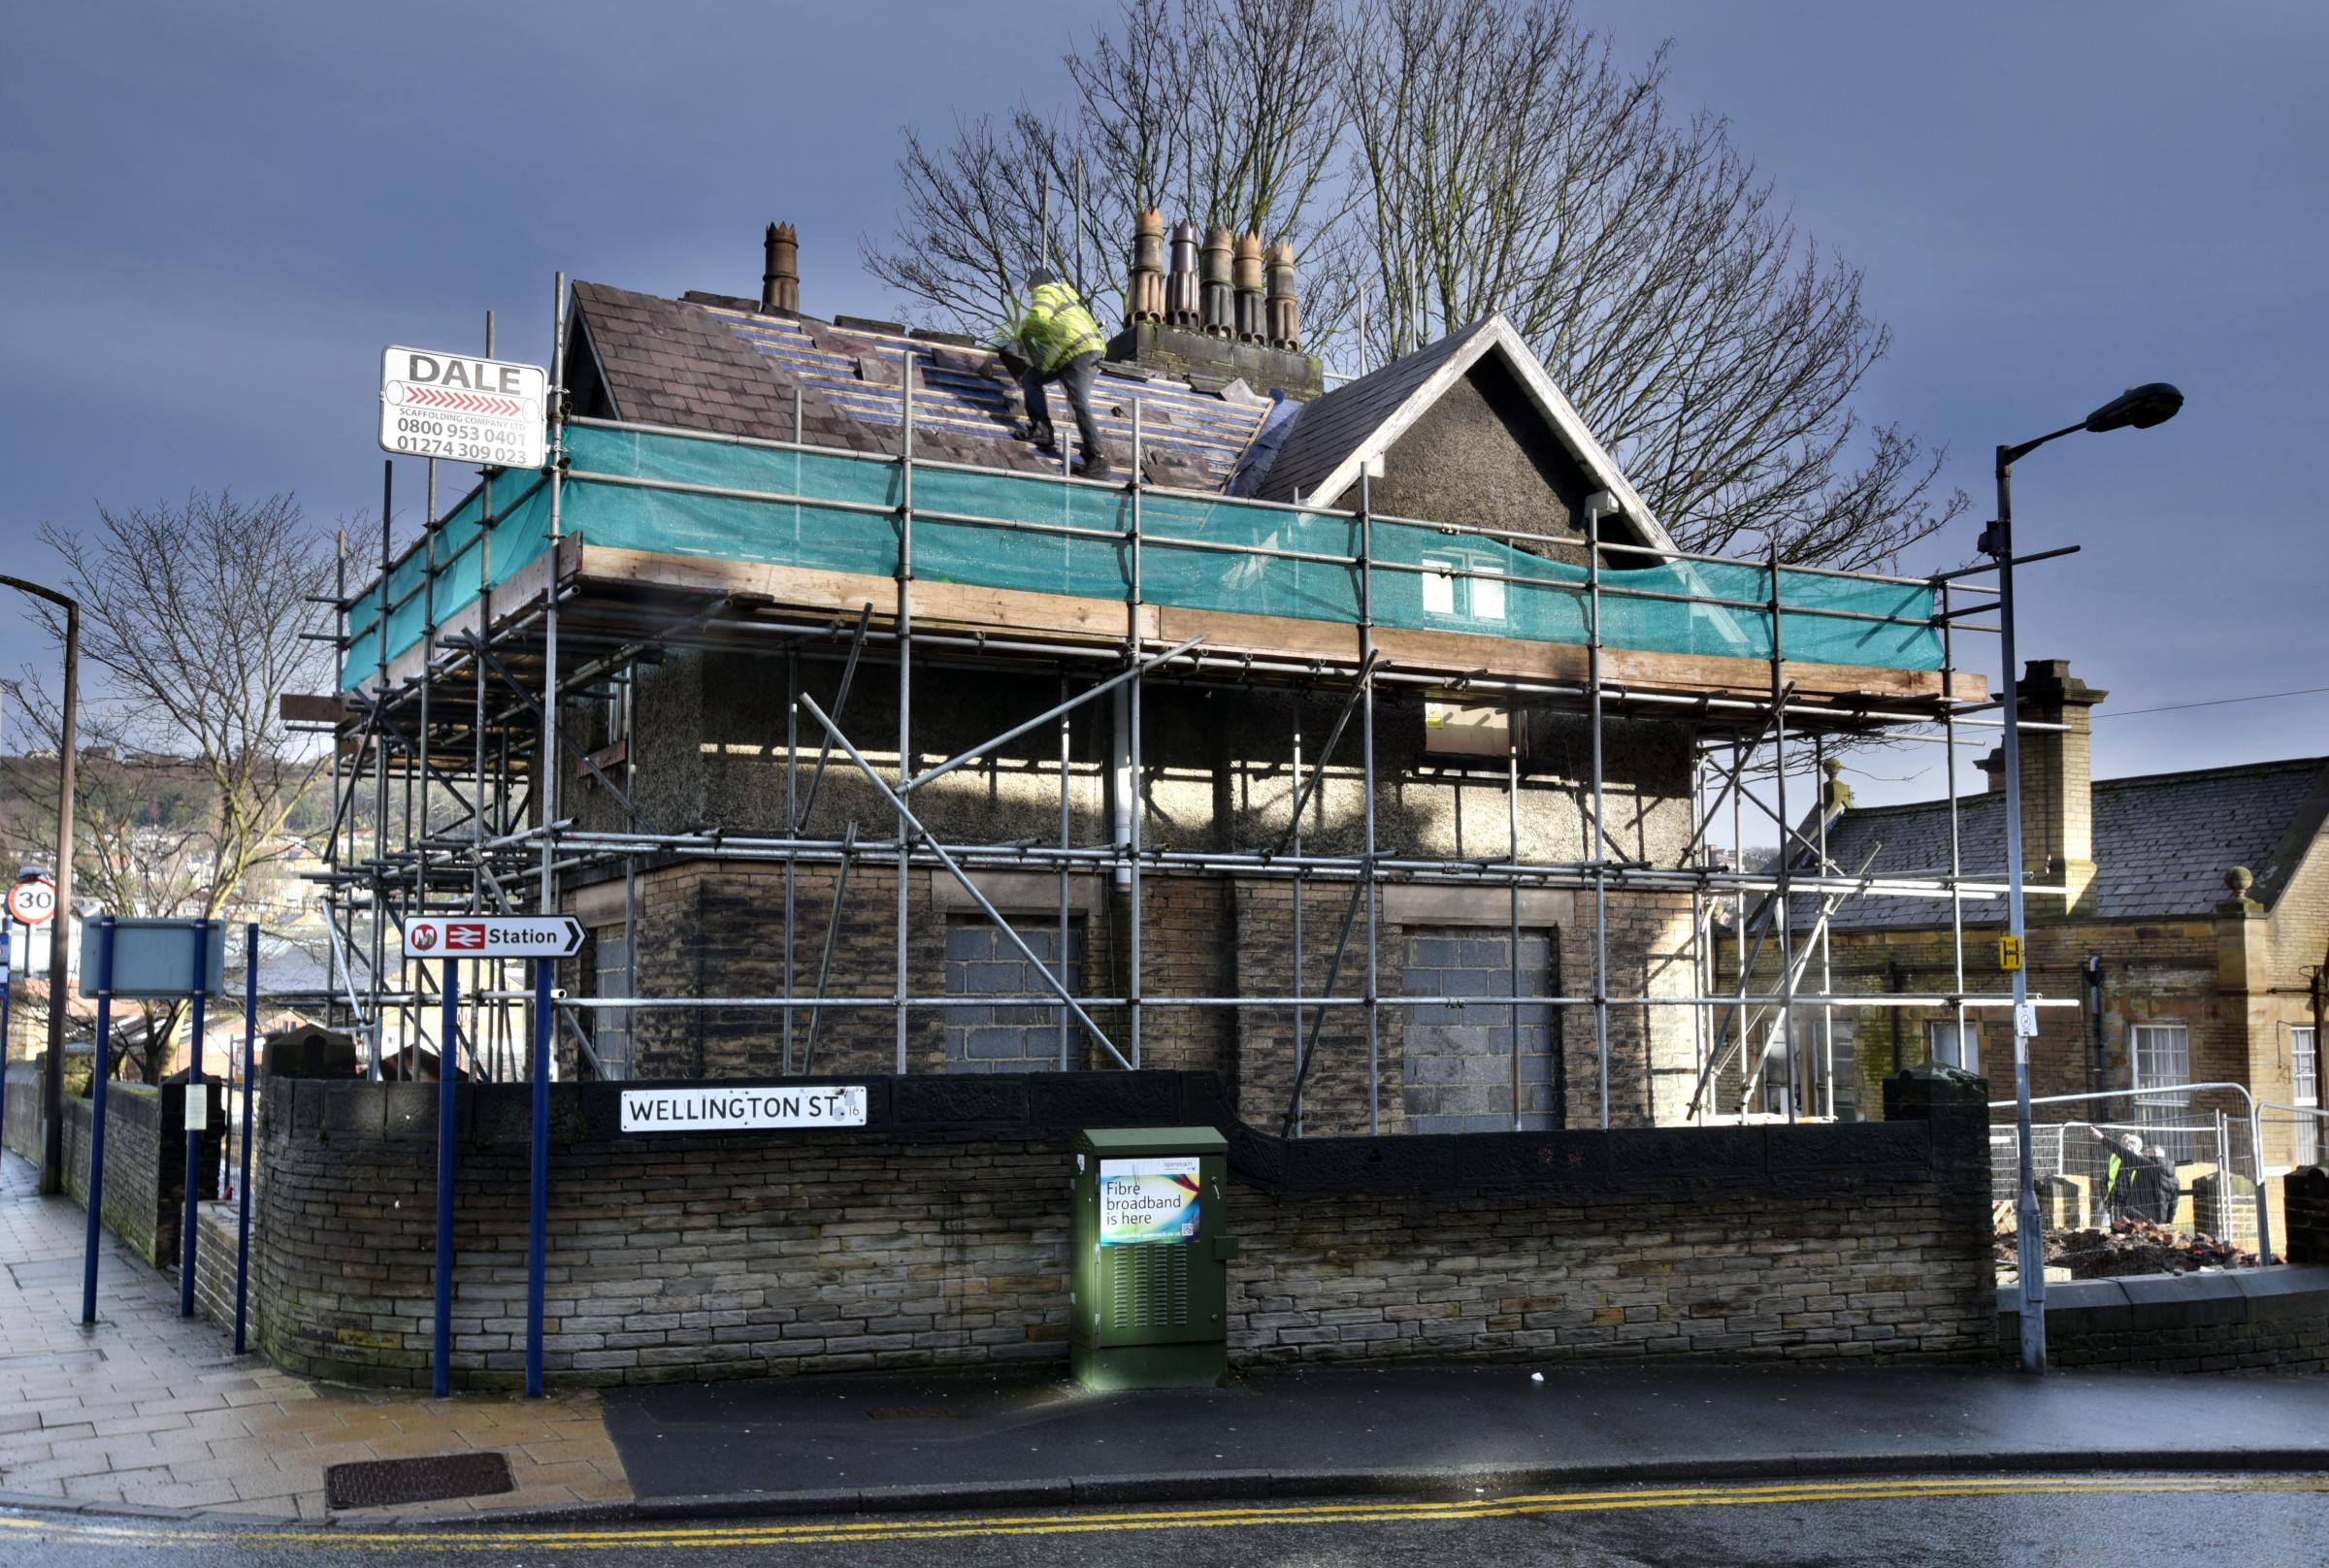 APPROVED: Fish restaurant plans for the Station Master's house in Bingley have now been given the go ahead